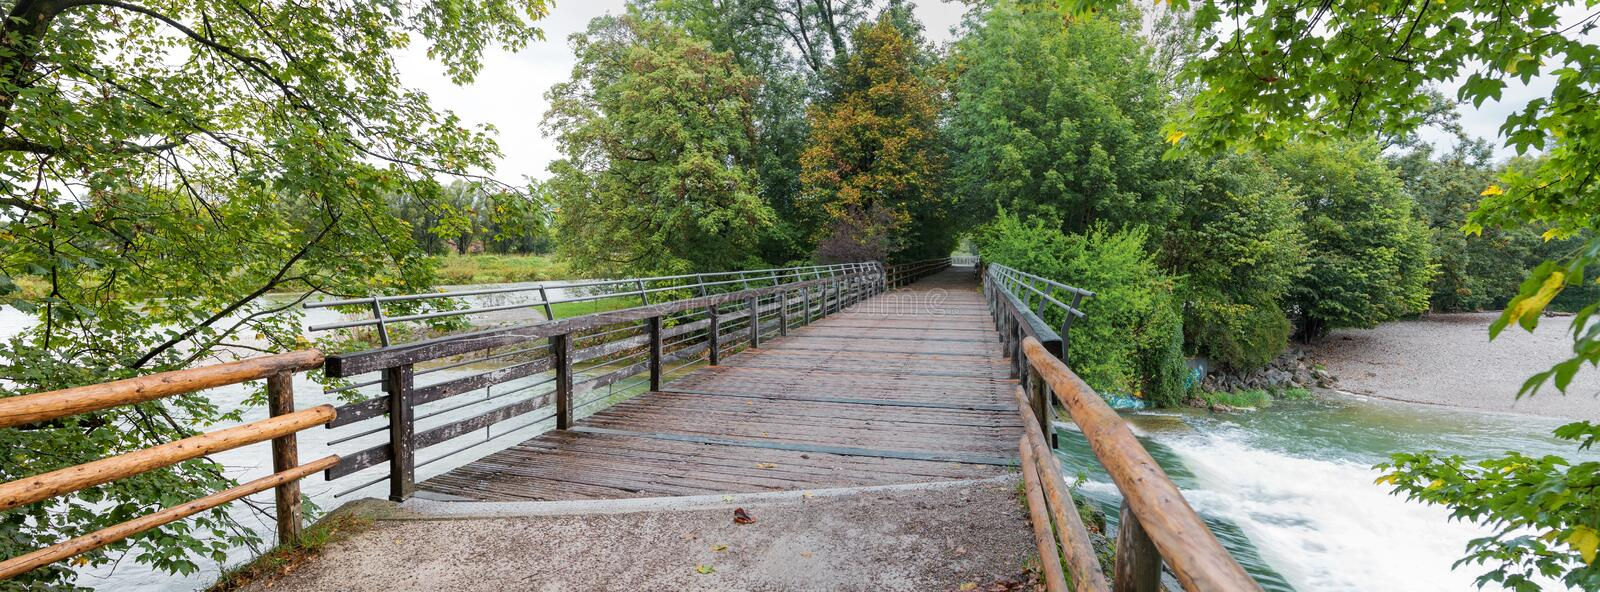 Recreational area at munich, bridge over isar river with green branches stock image